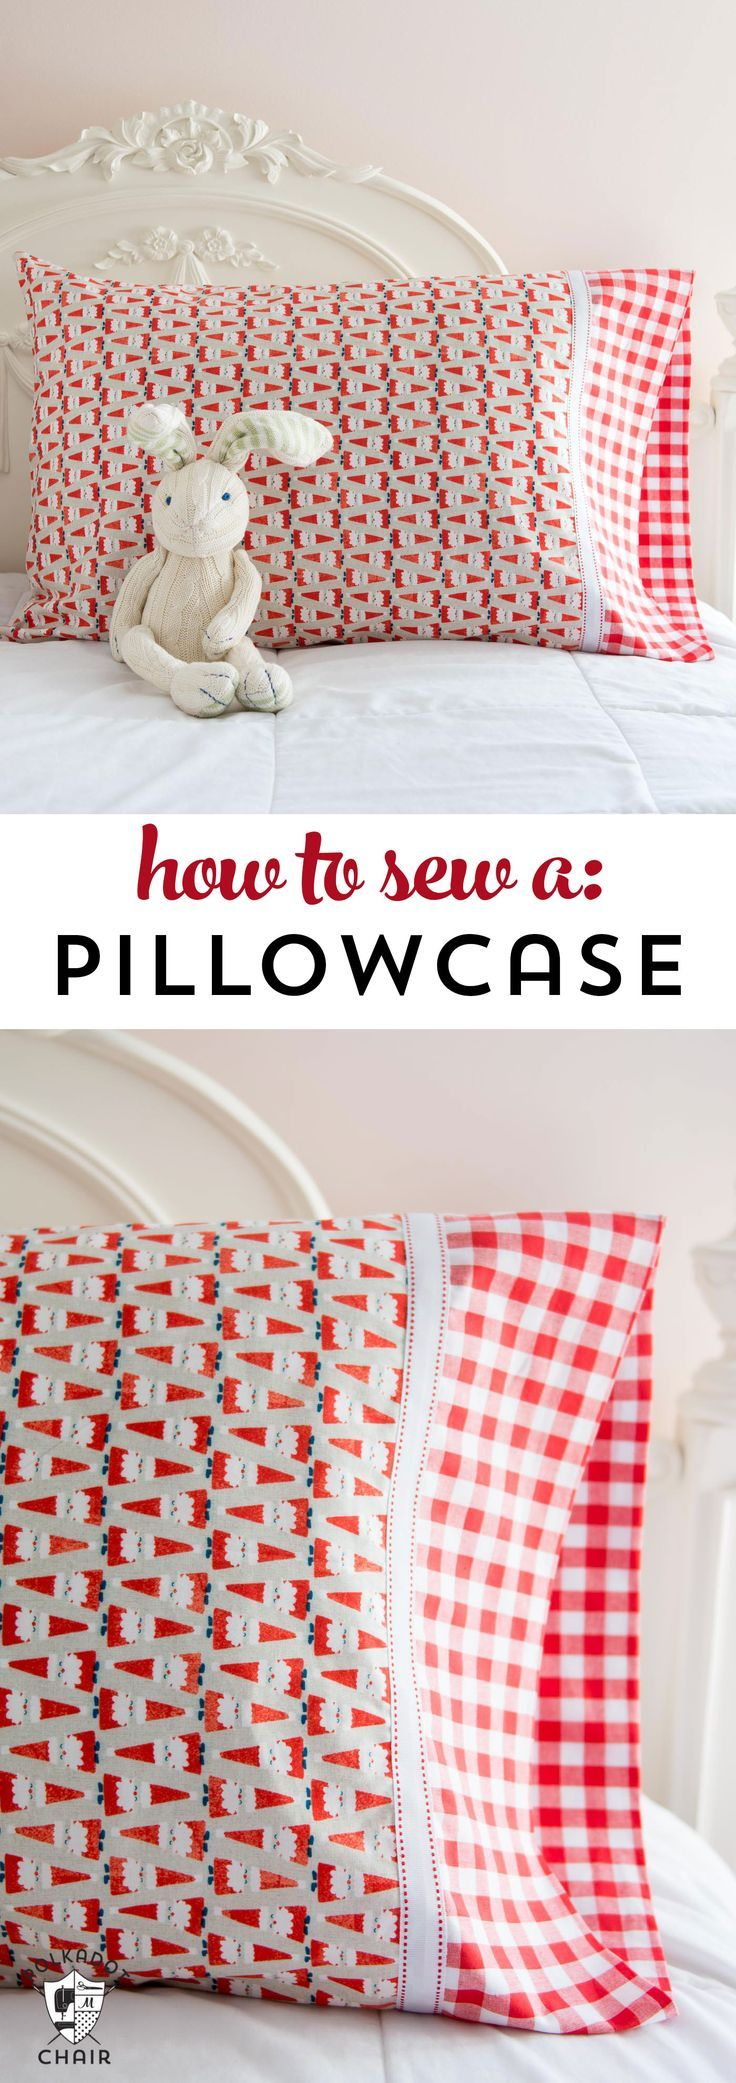 Learn a quick and easy way to sew a pillowcase on polkadotchair.com